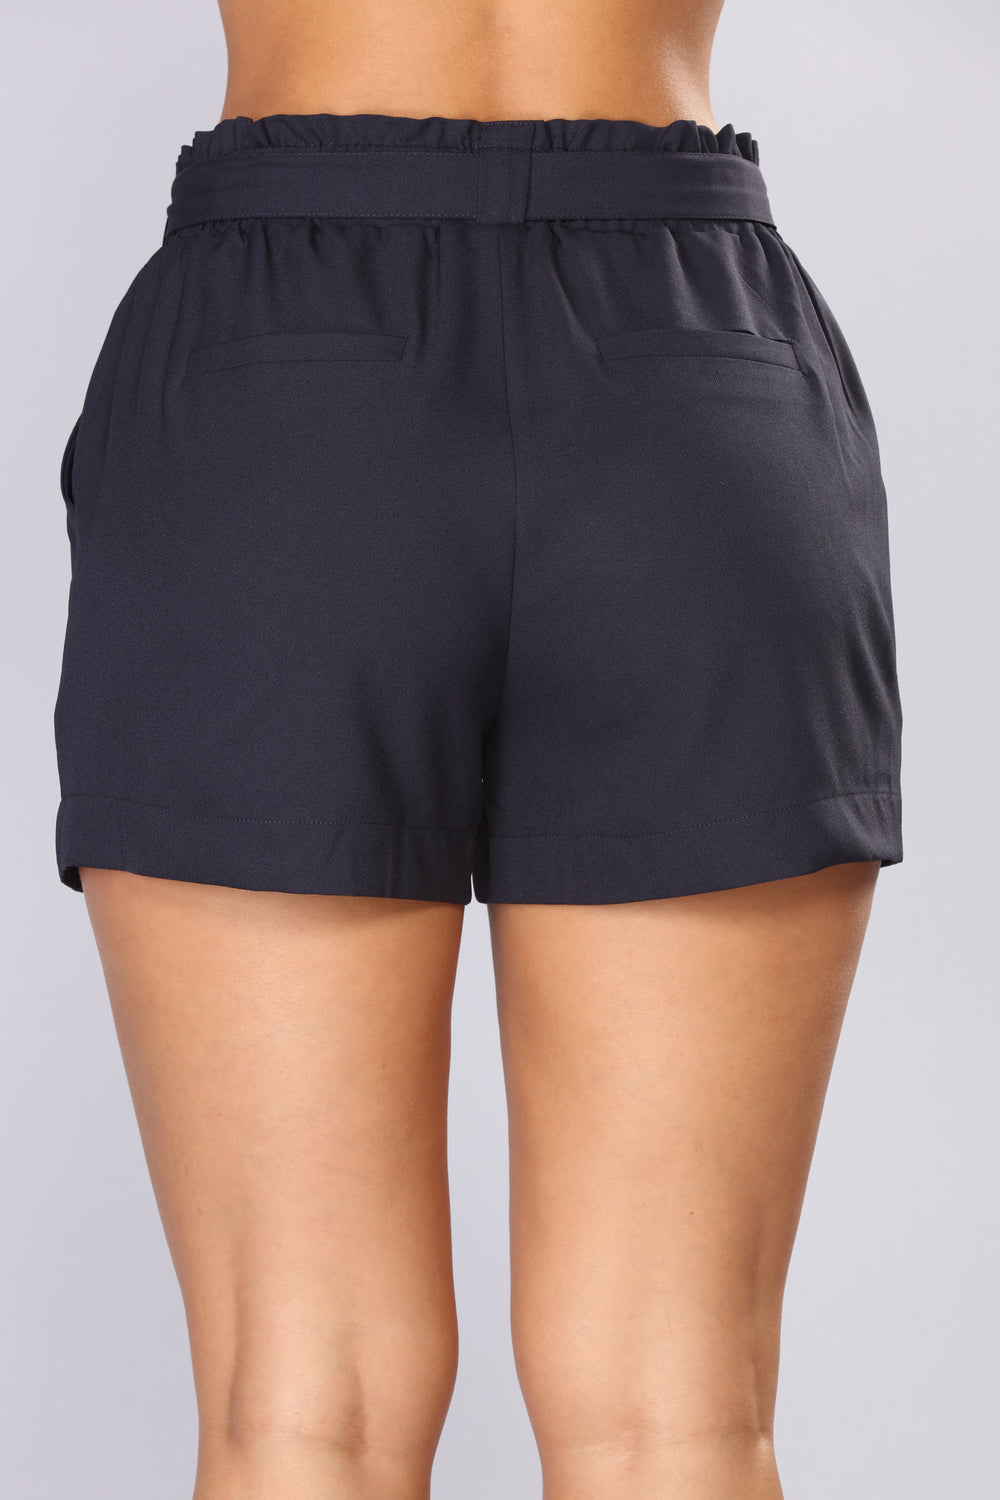 Out For The Day Linen Shorts - Navy